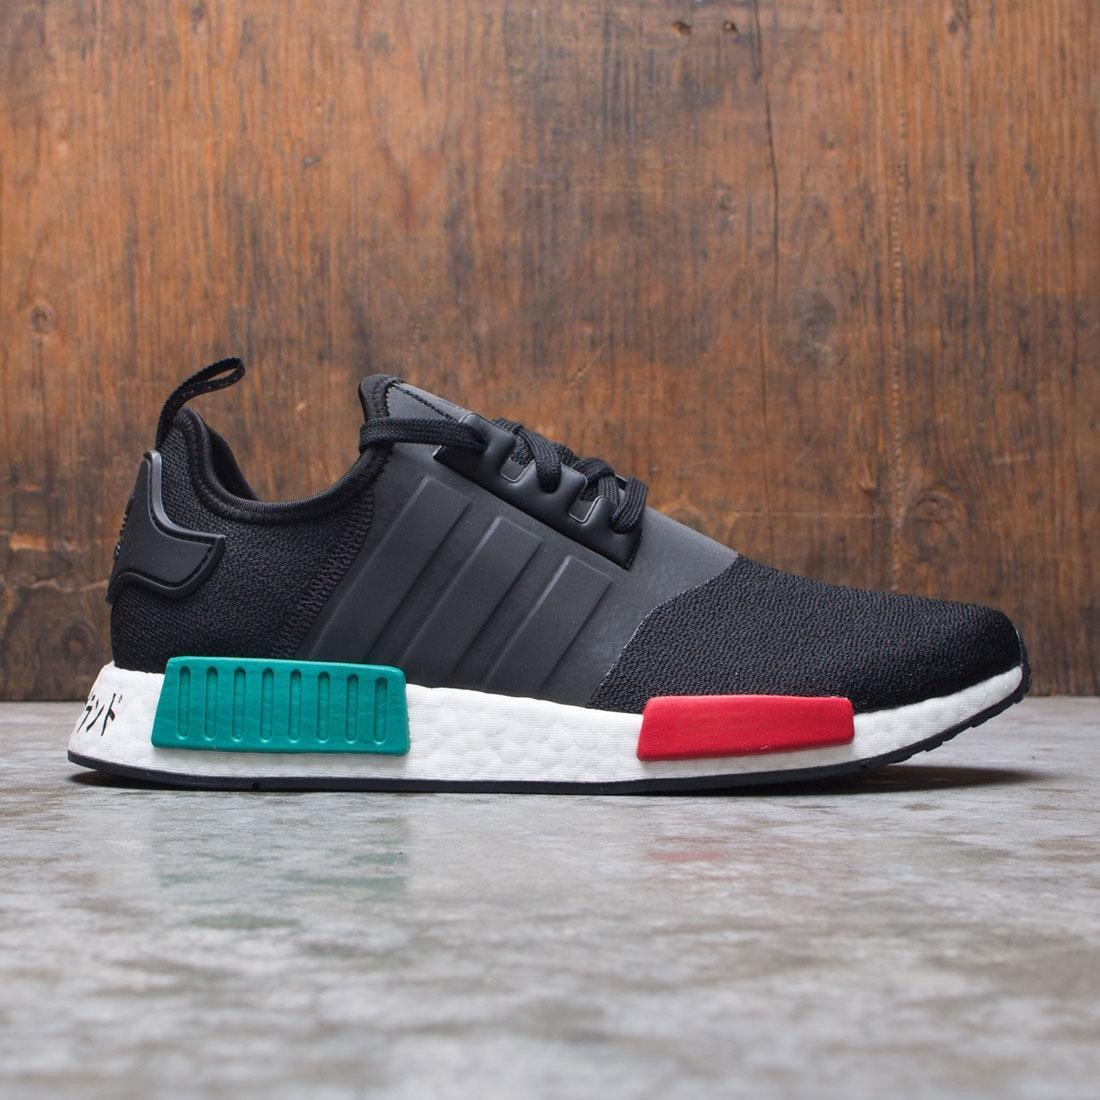 Adidas Men NMD R1 (black / glory green / lush red)